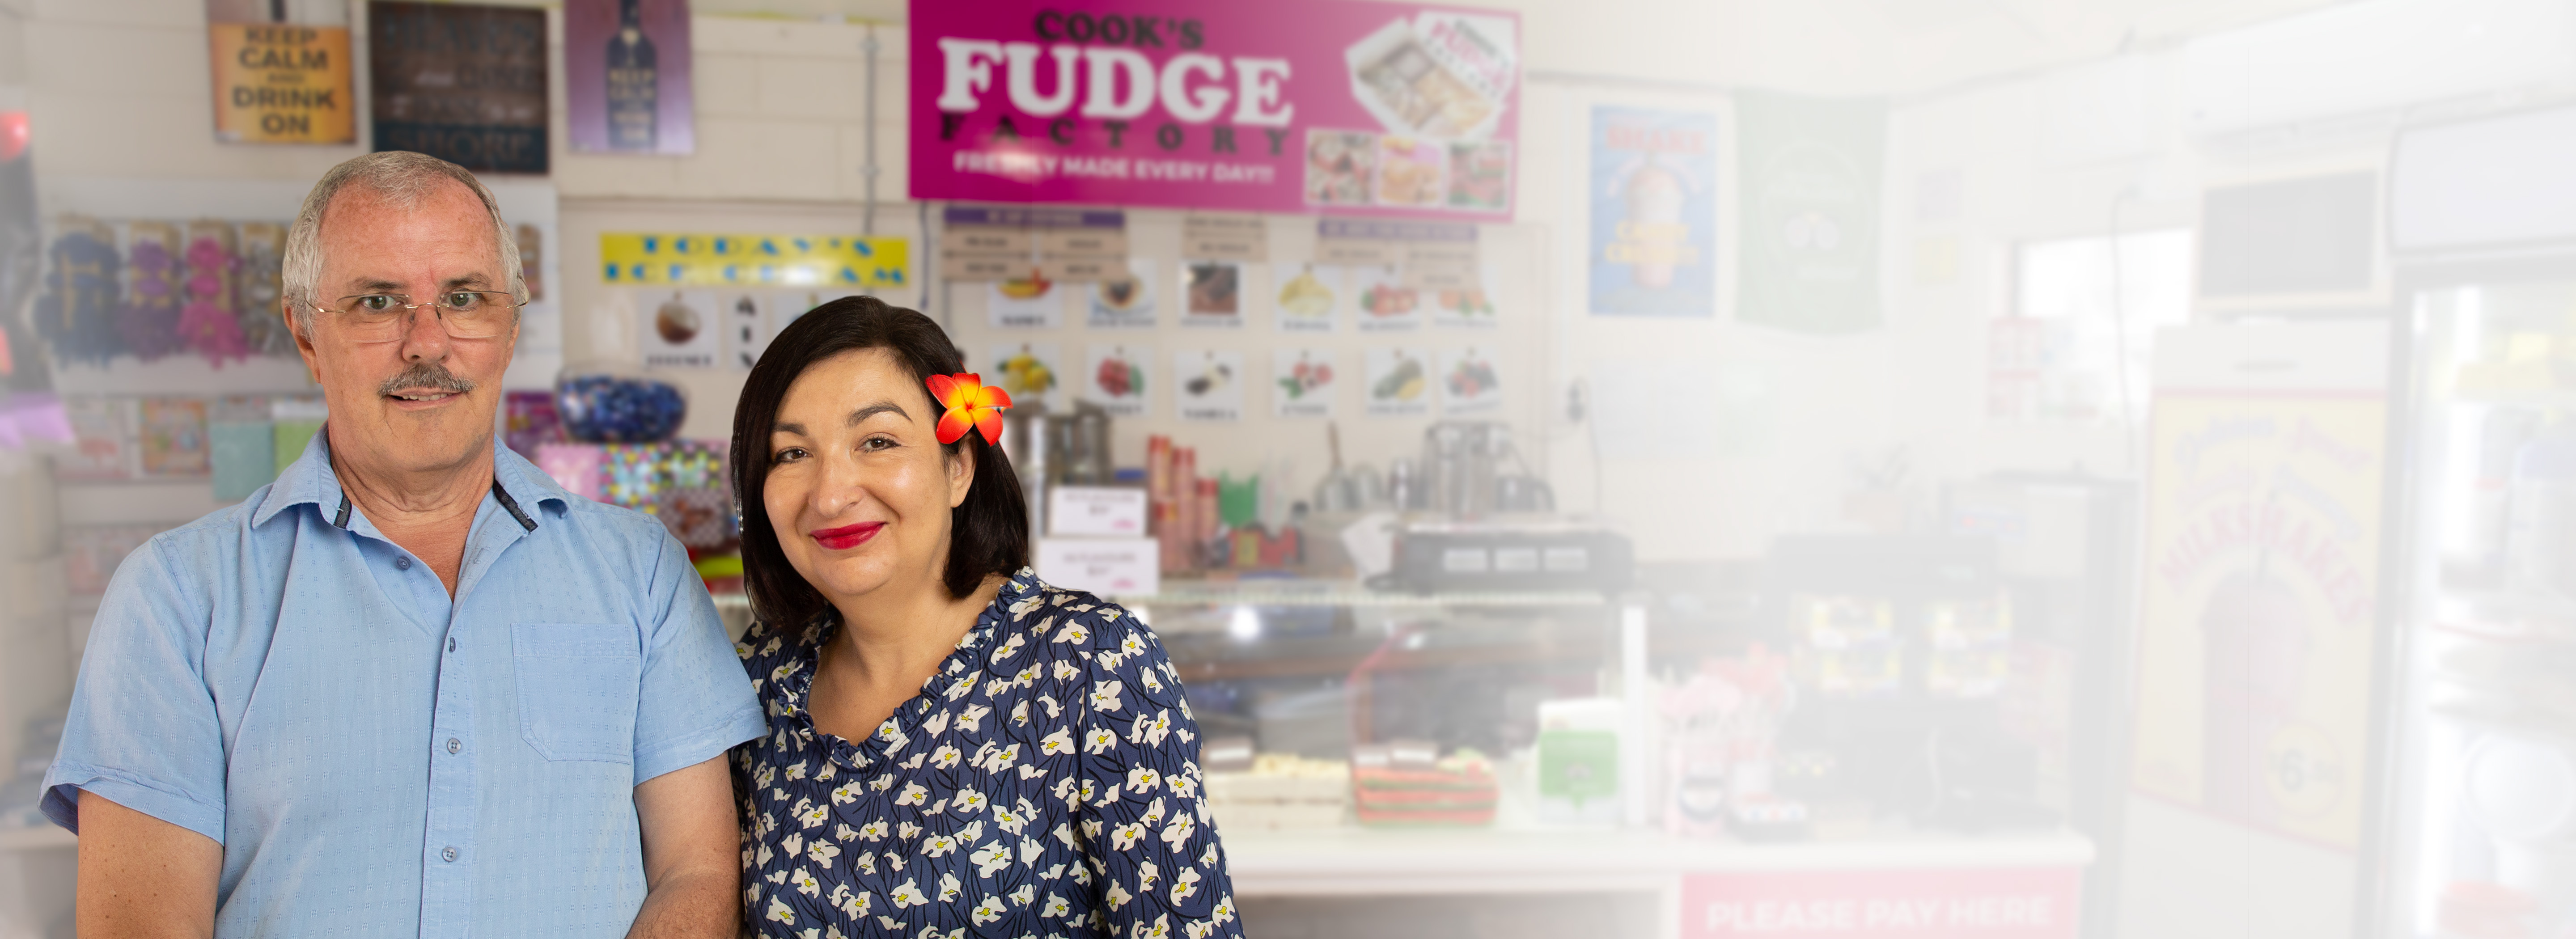 Cook Island Fudge Factory